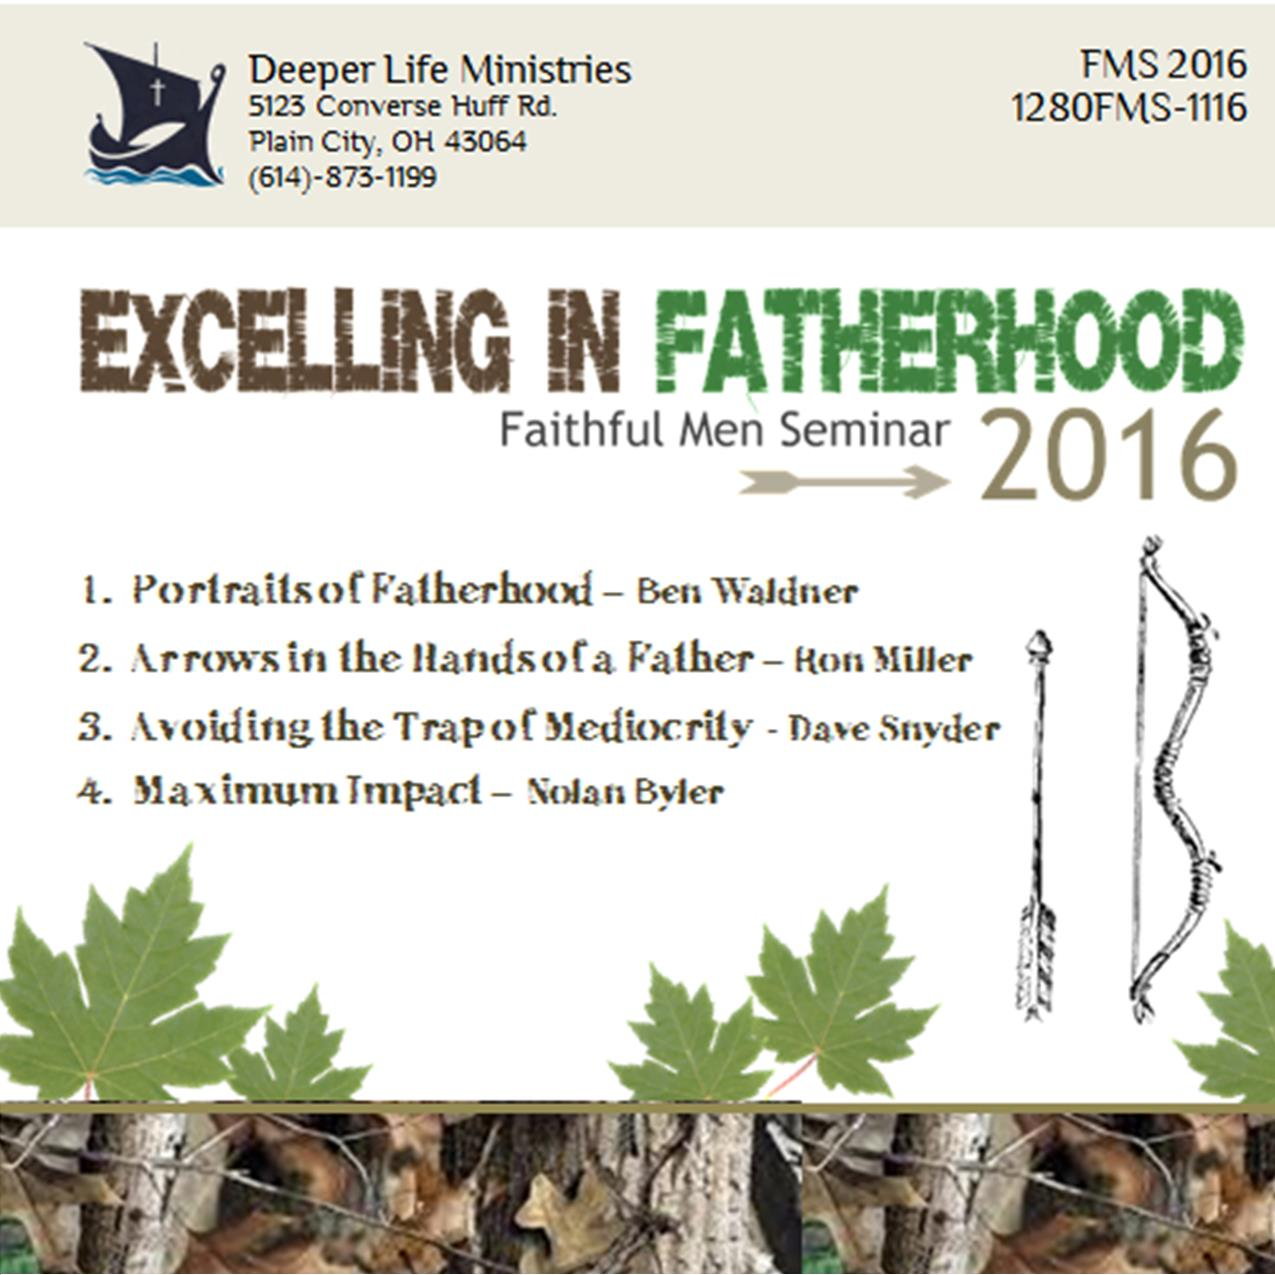 FAITHFUL MEN SEMINAR 2016 Various Speakers